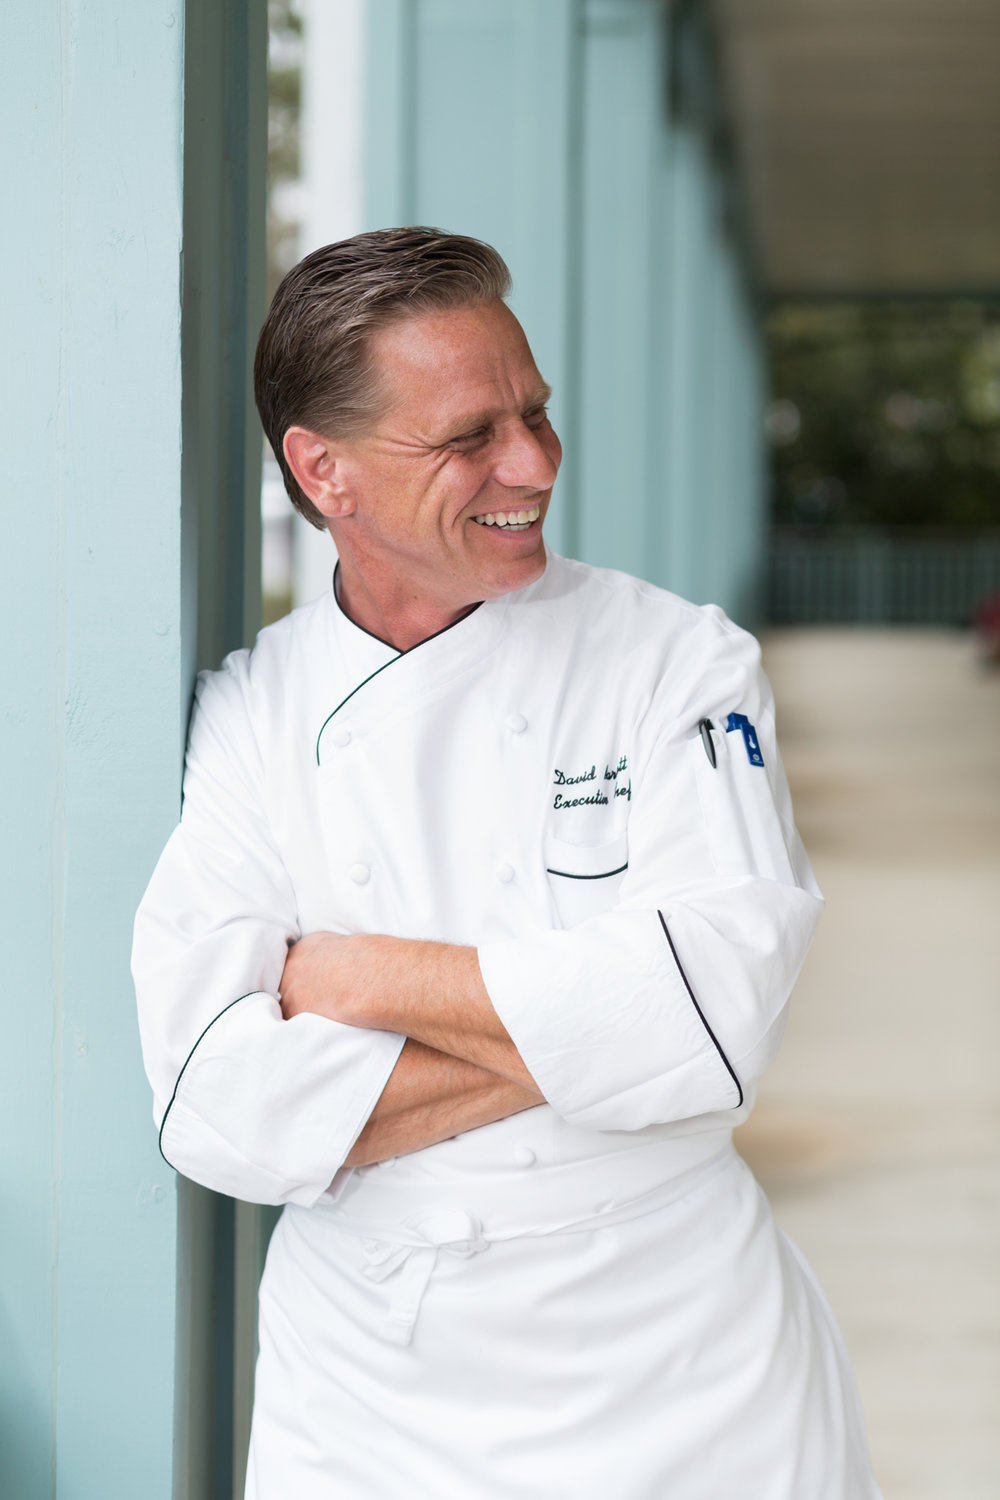 lifestyle-chef-portrait.jpg